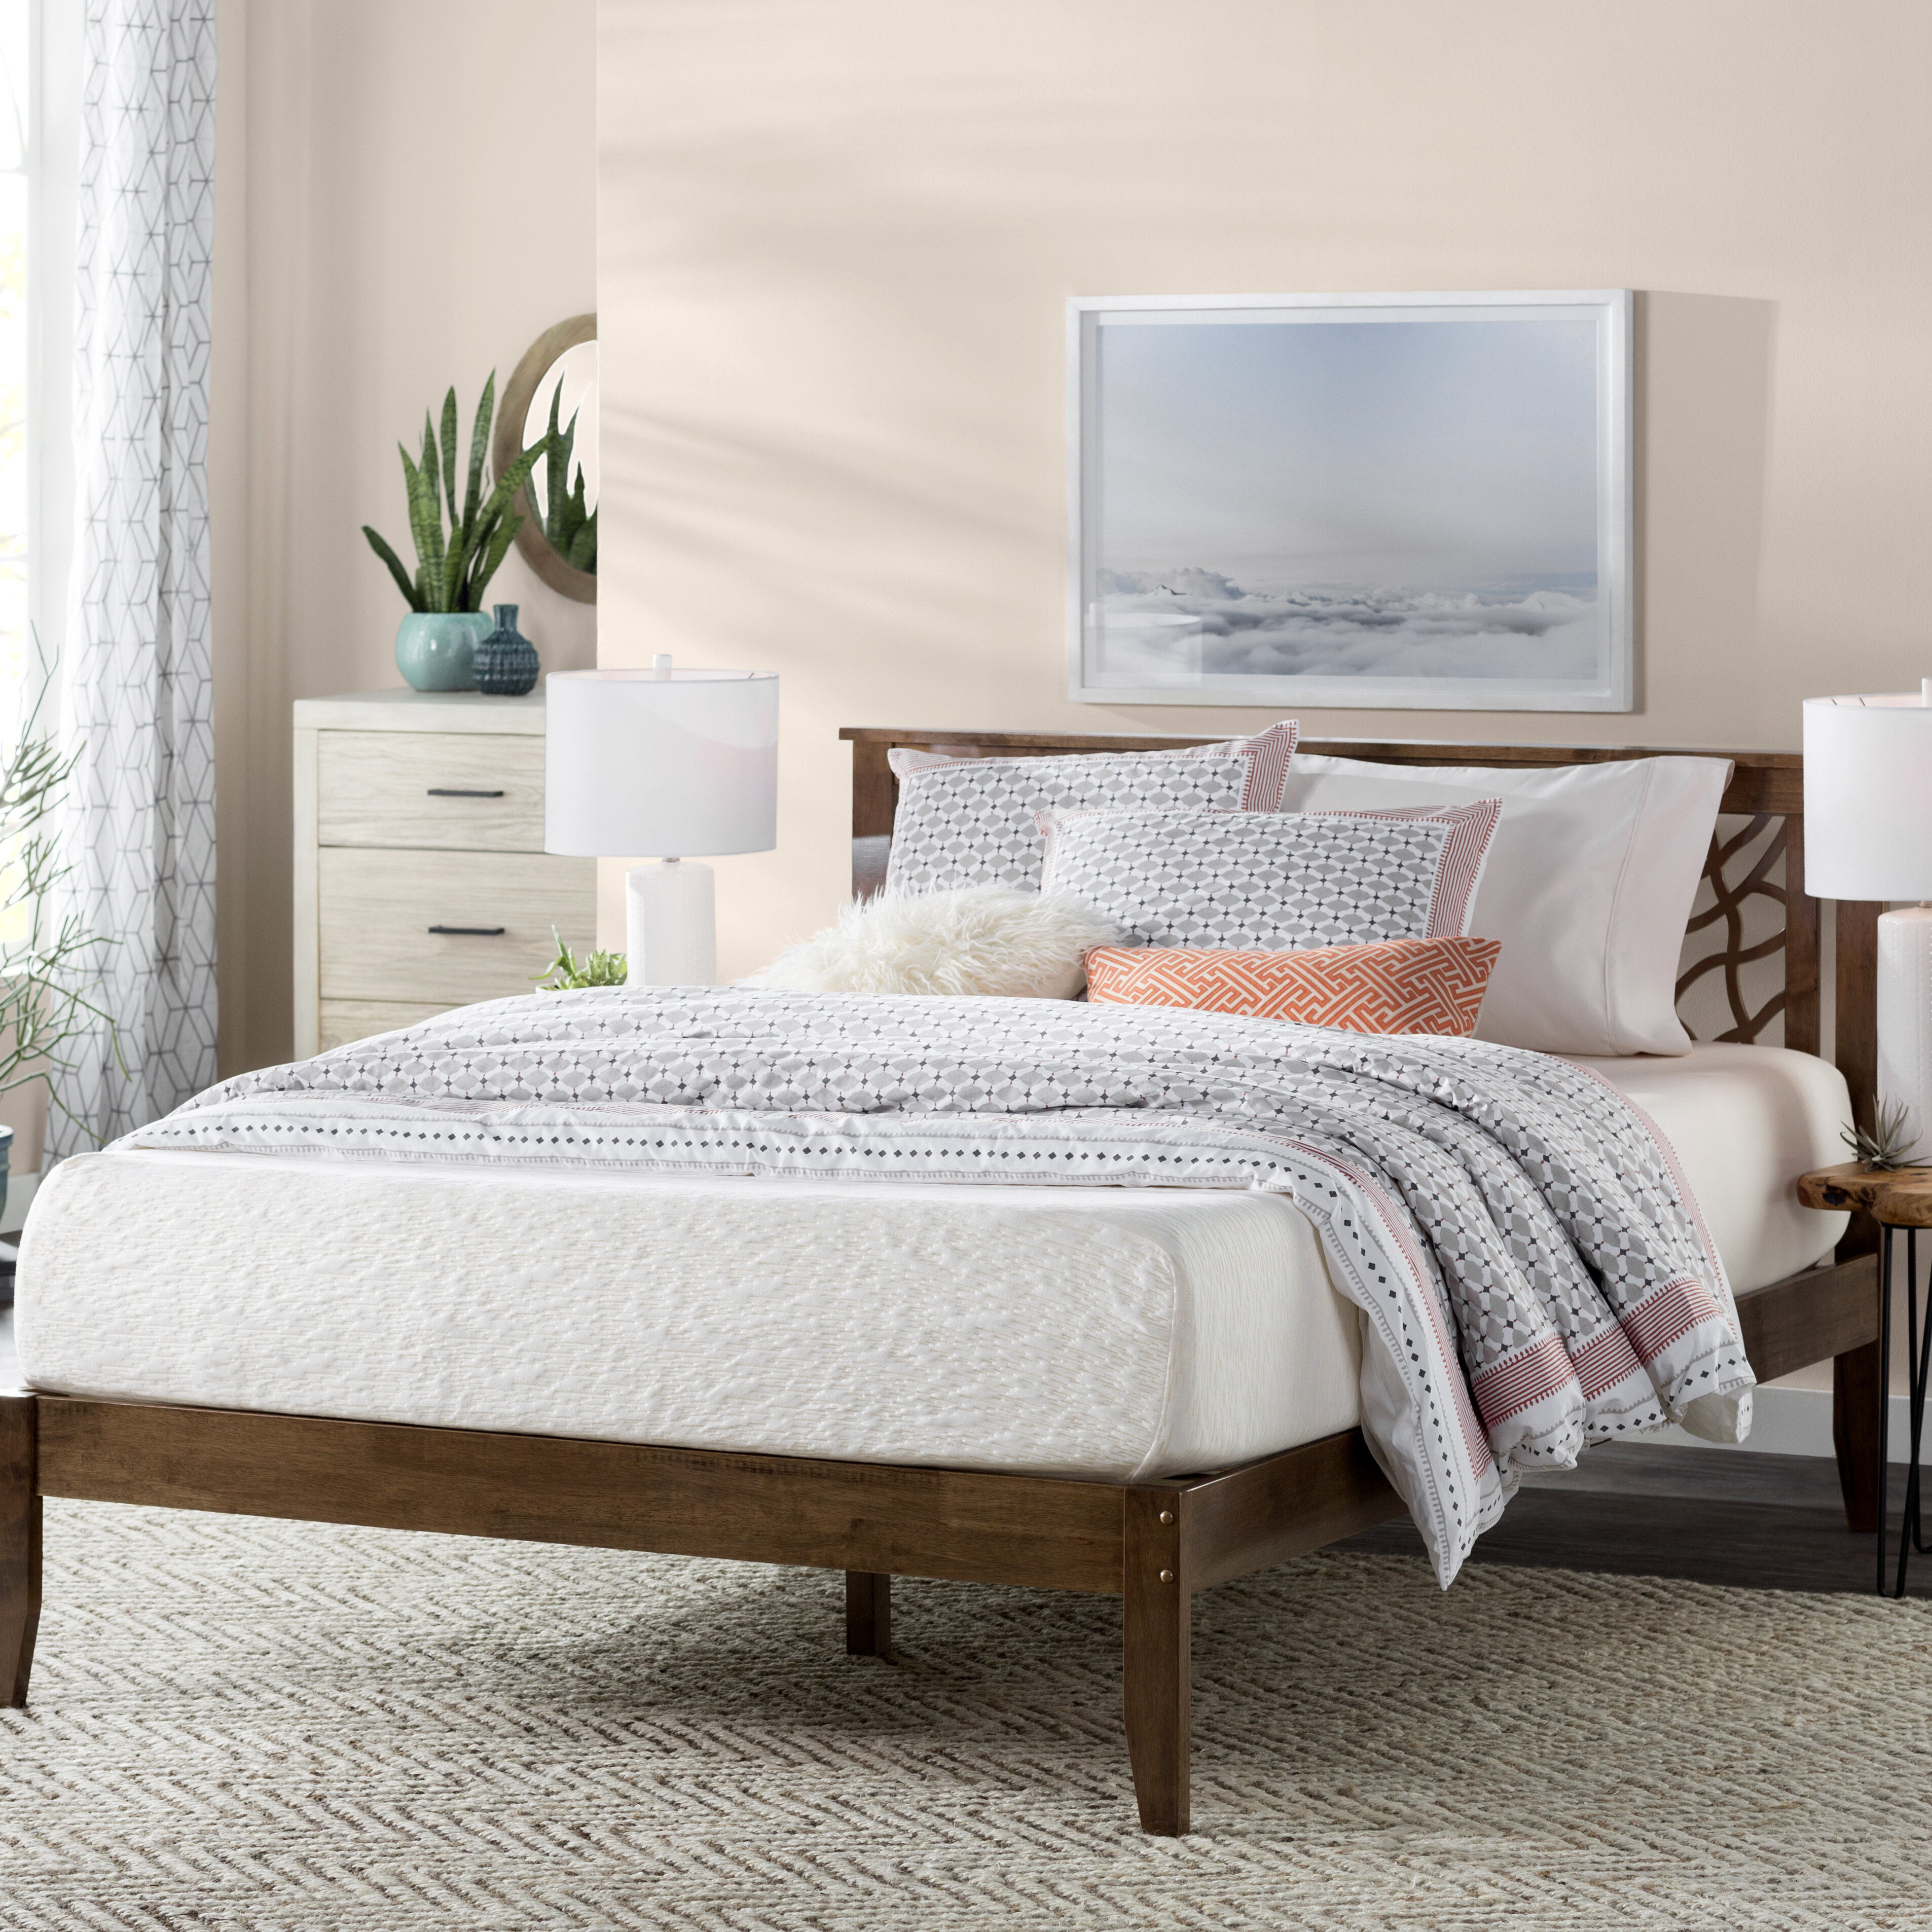 matress home heavy ratings with heather unique best reviews amp people jan mattresses cool rose person mattress decor queen kingsdown for of